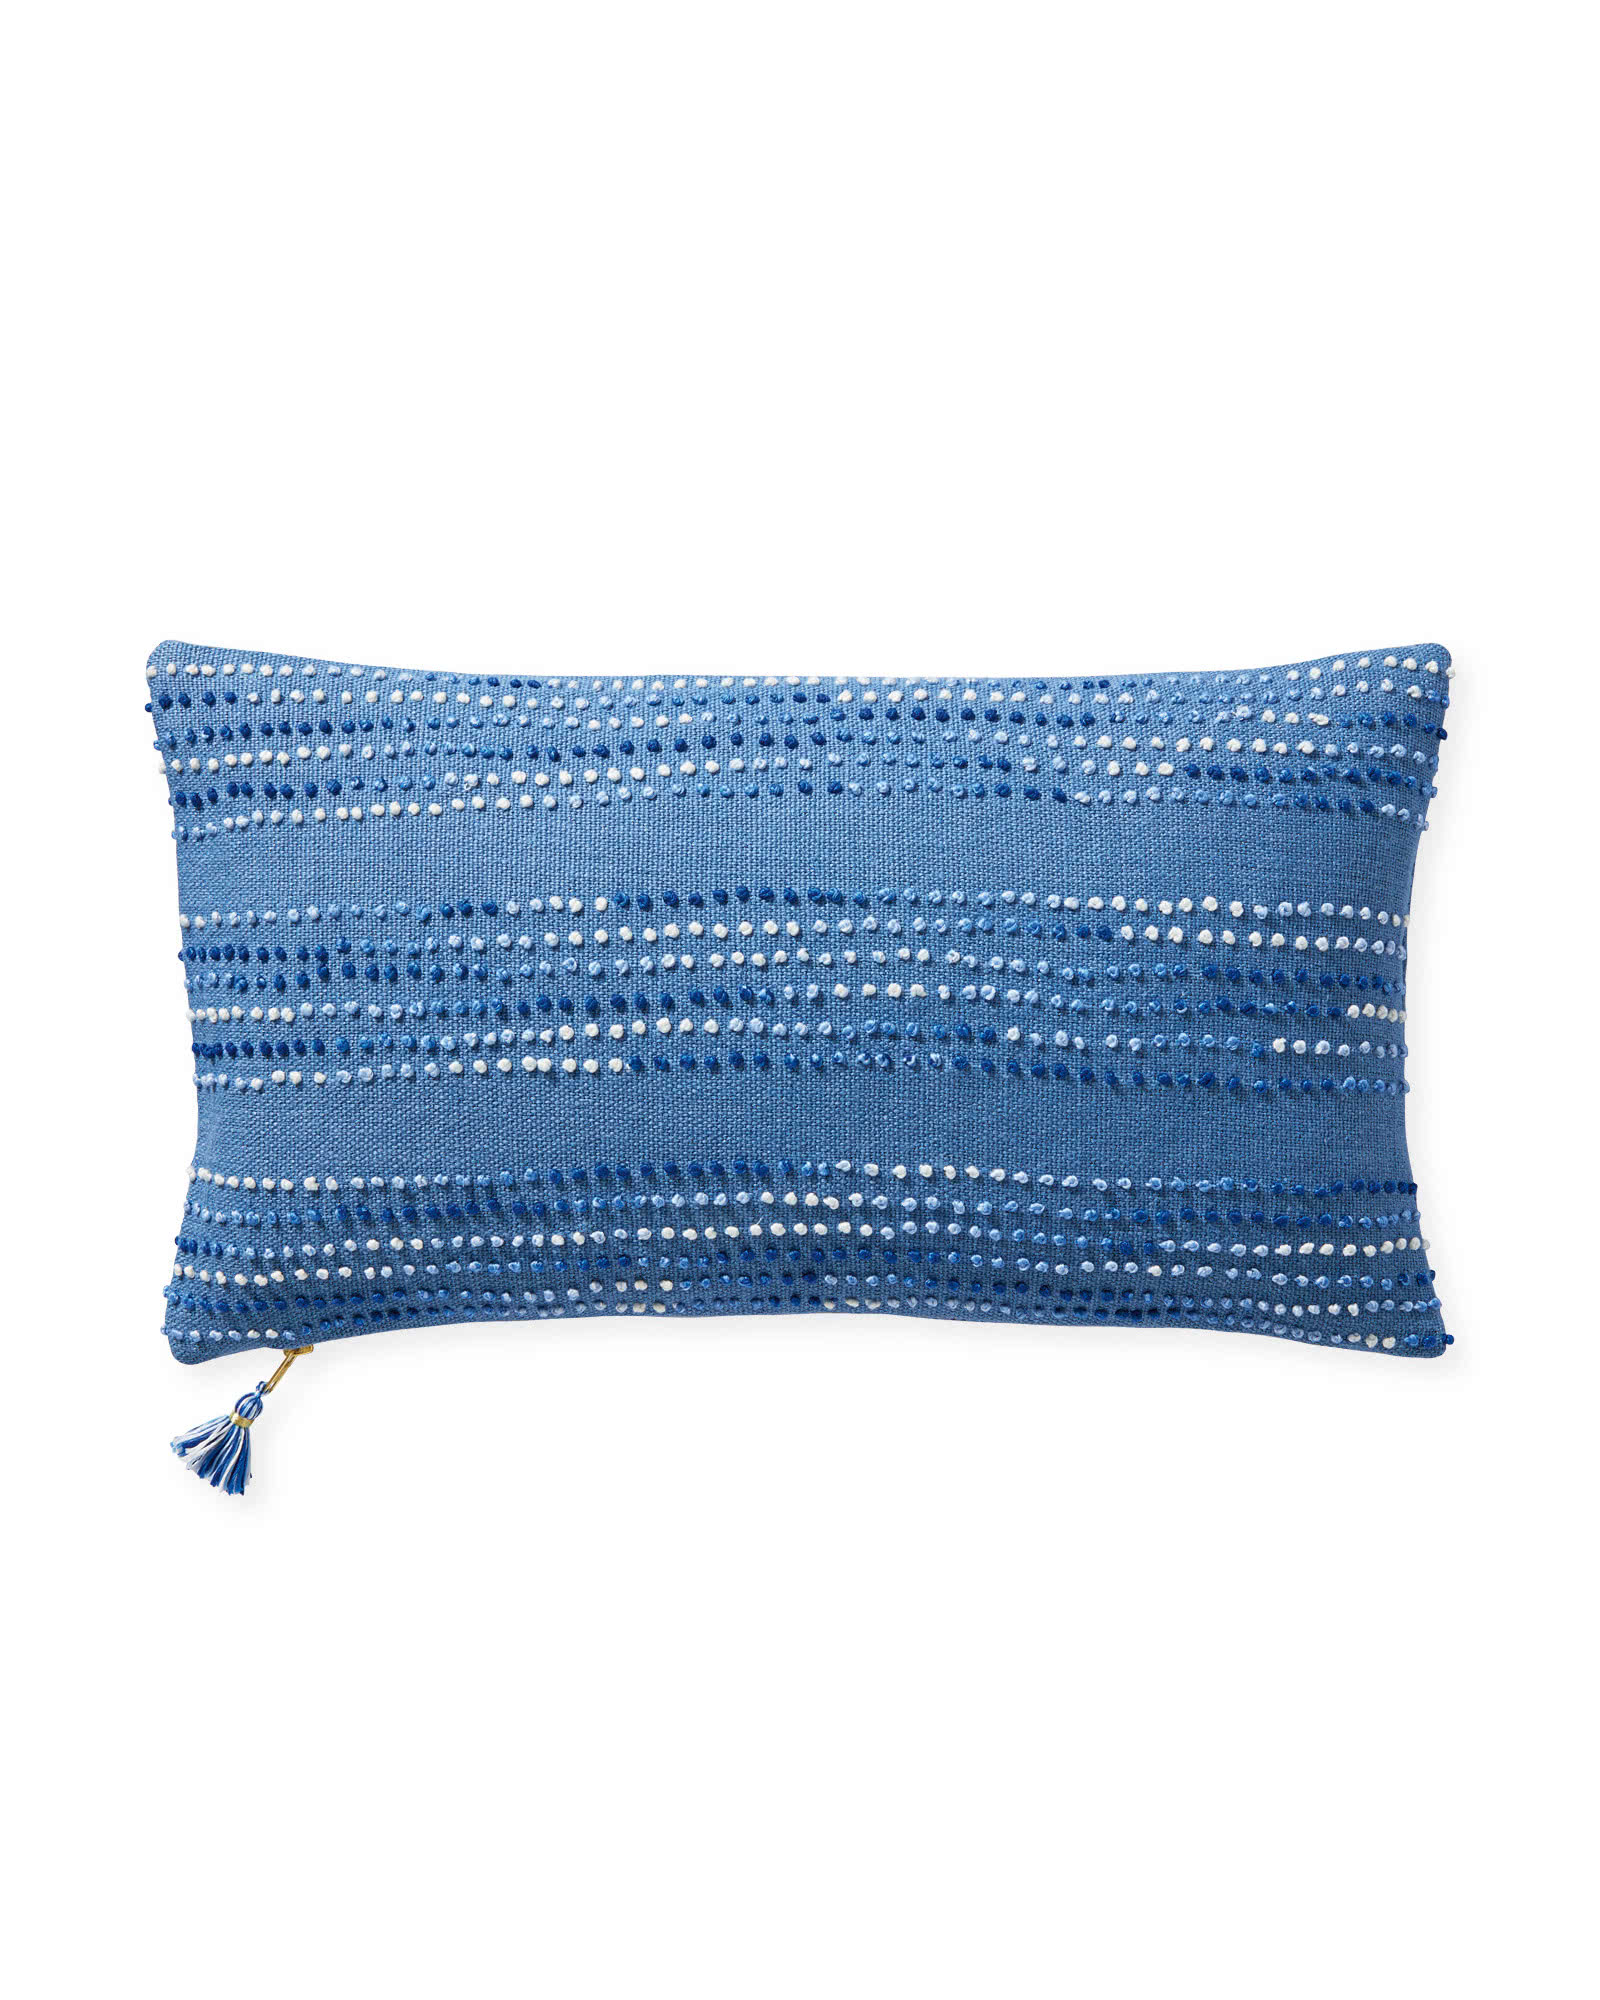 Pryce Pillow Cover, French Blue